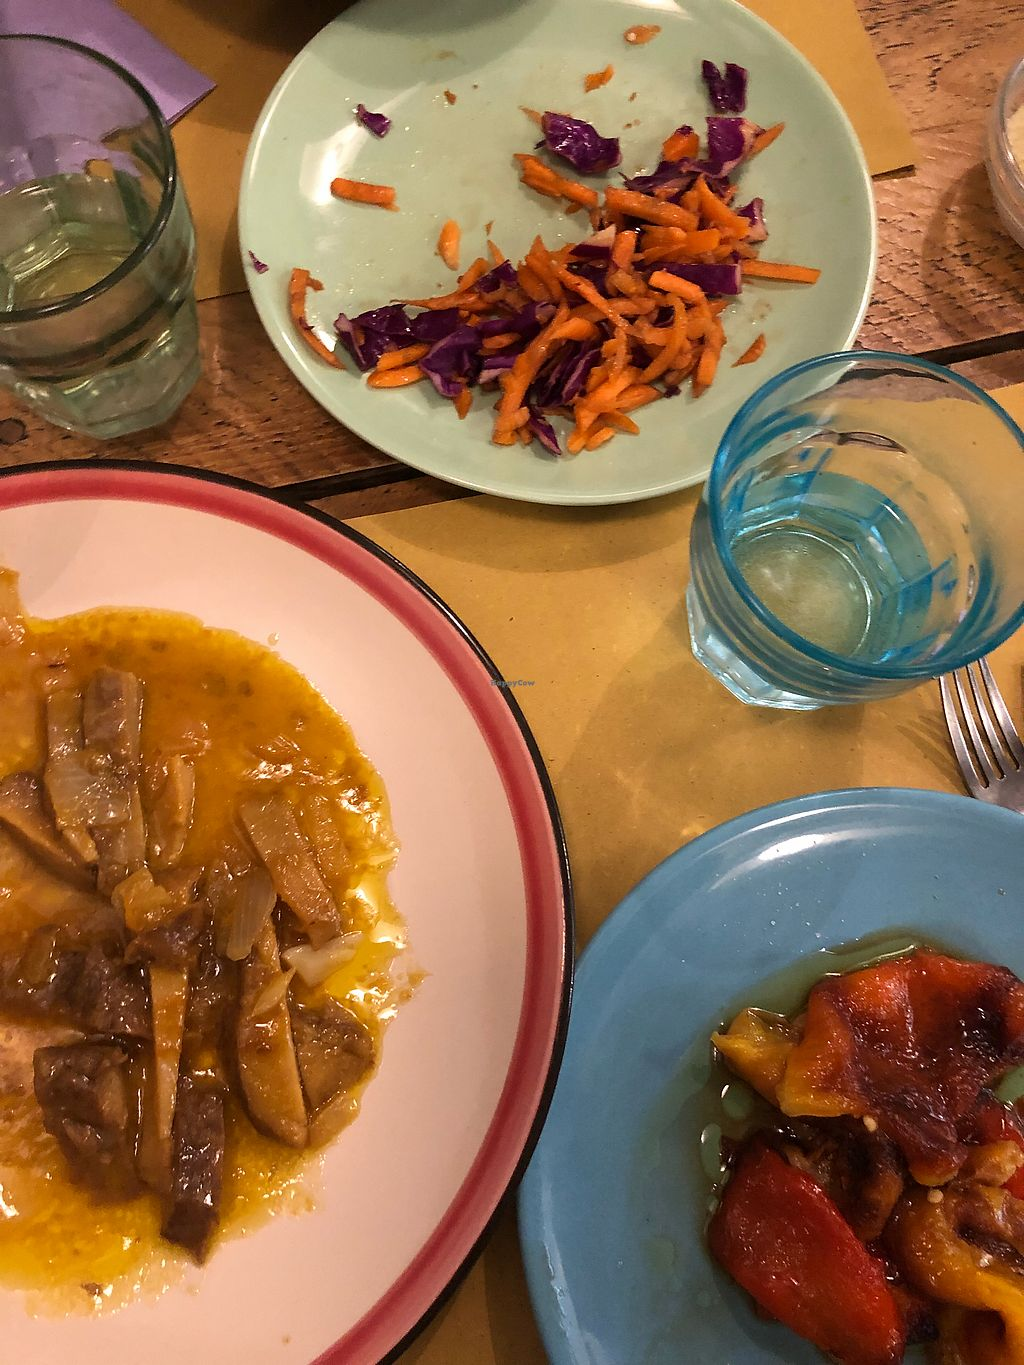 """Photo of MiaGola Caffe  by <a href=""""/members/profile/Sommer"""">Sommer</a> <br/>Seitan, Insalata, Peperoni <br/> January 4, 2018  - <a href='/contact/abuse/image/69658/342851'>Report</a>"""